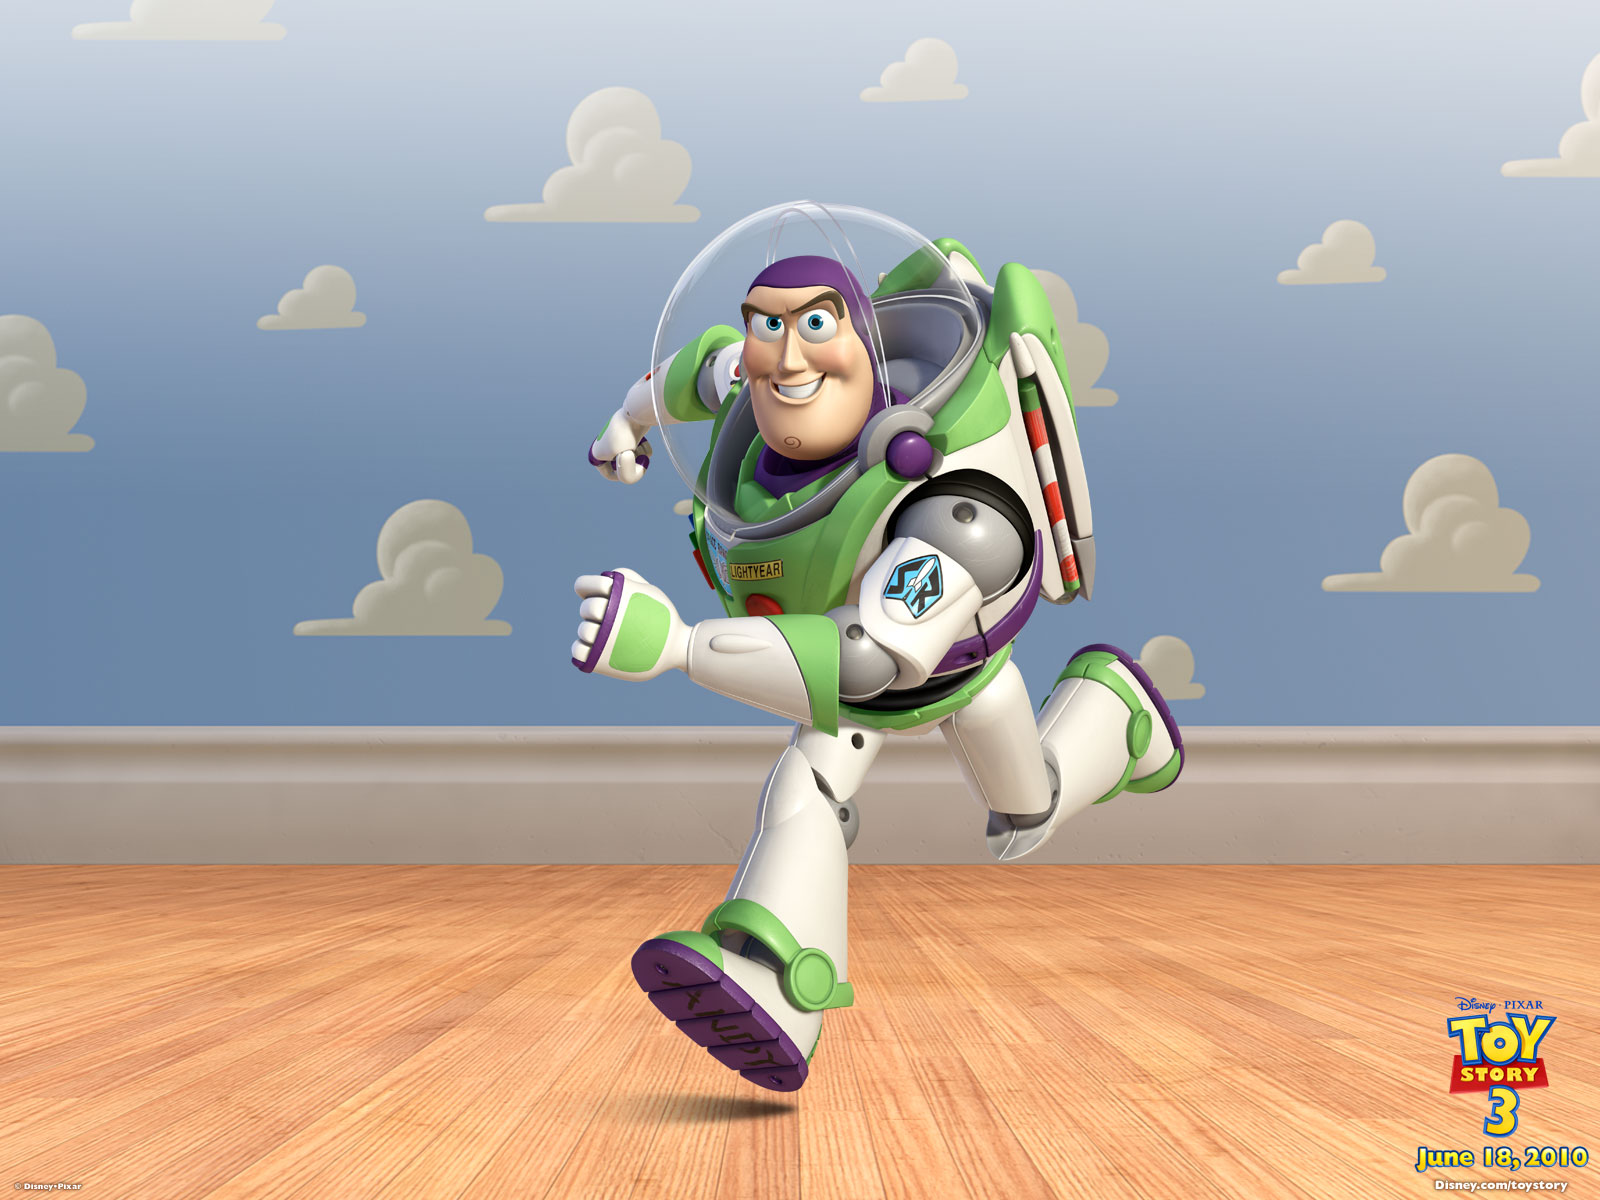 Buzz Lightyear in Toy Story 3 236.05 Kb